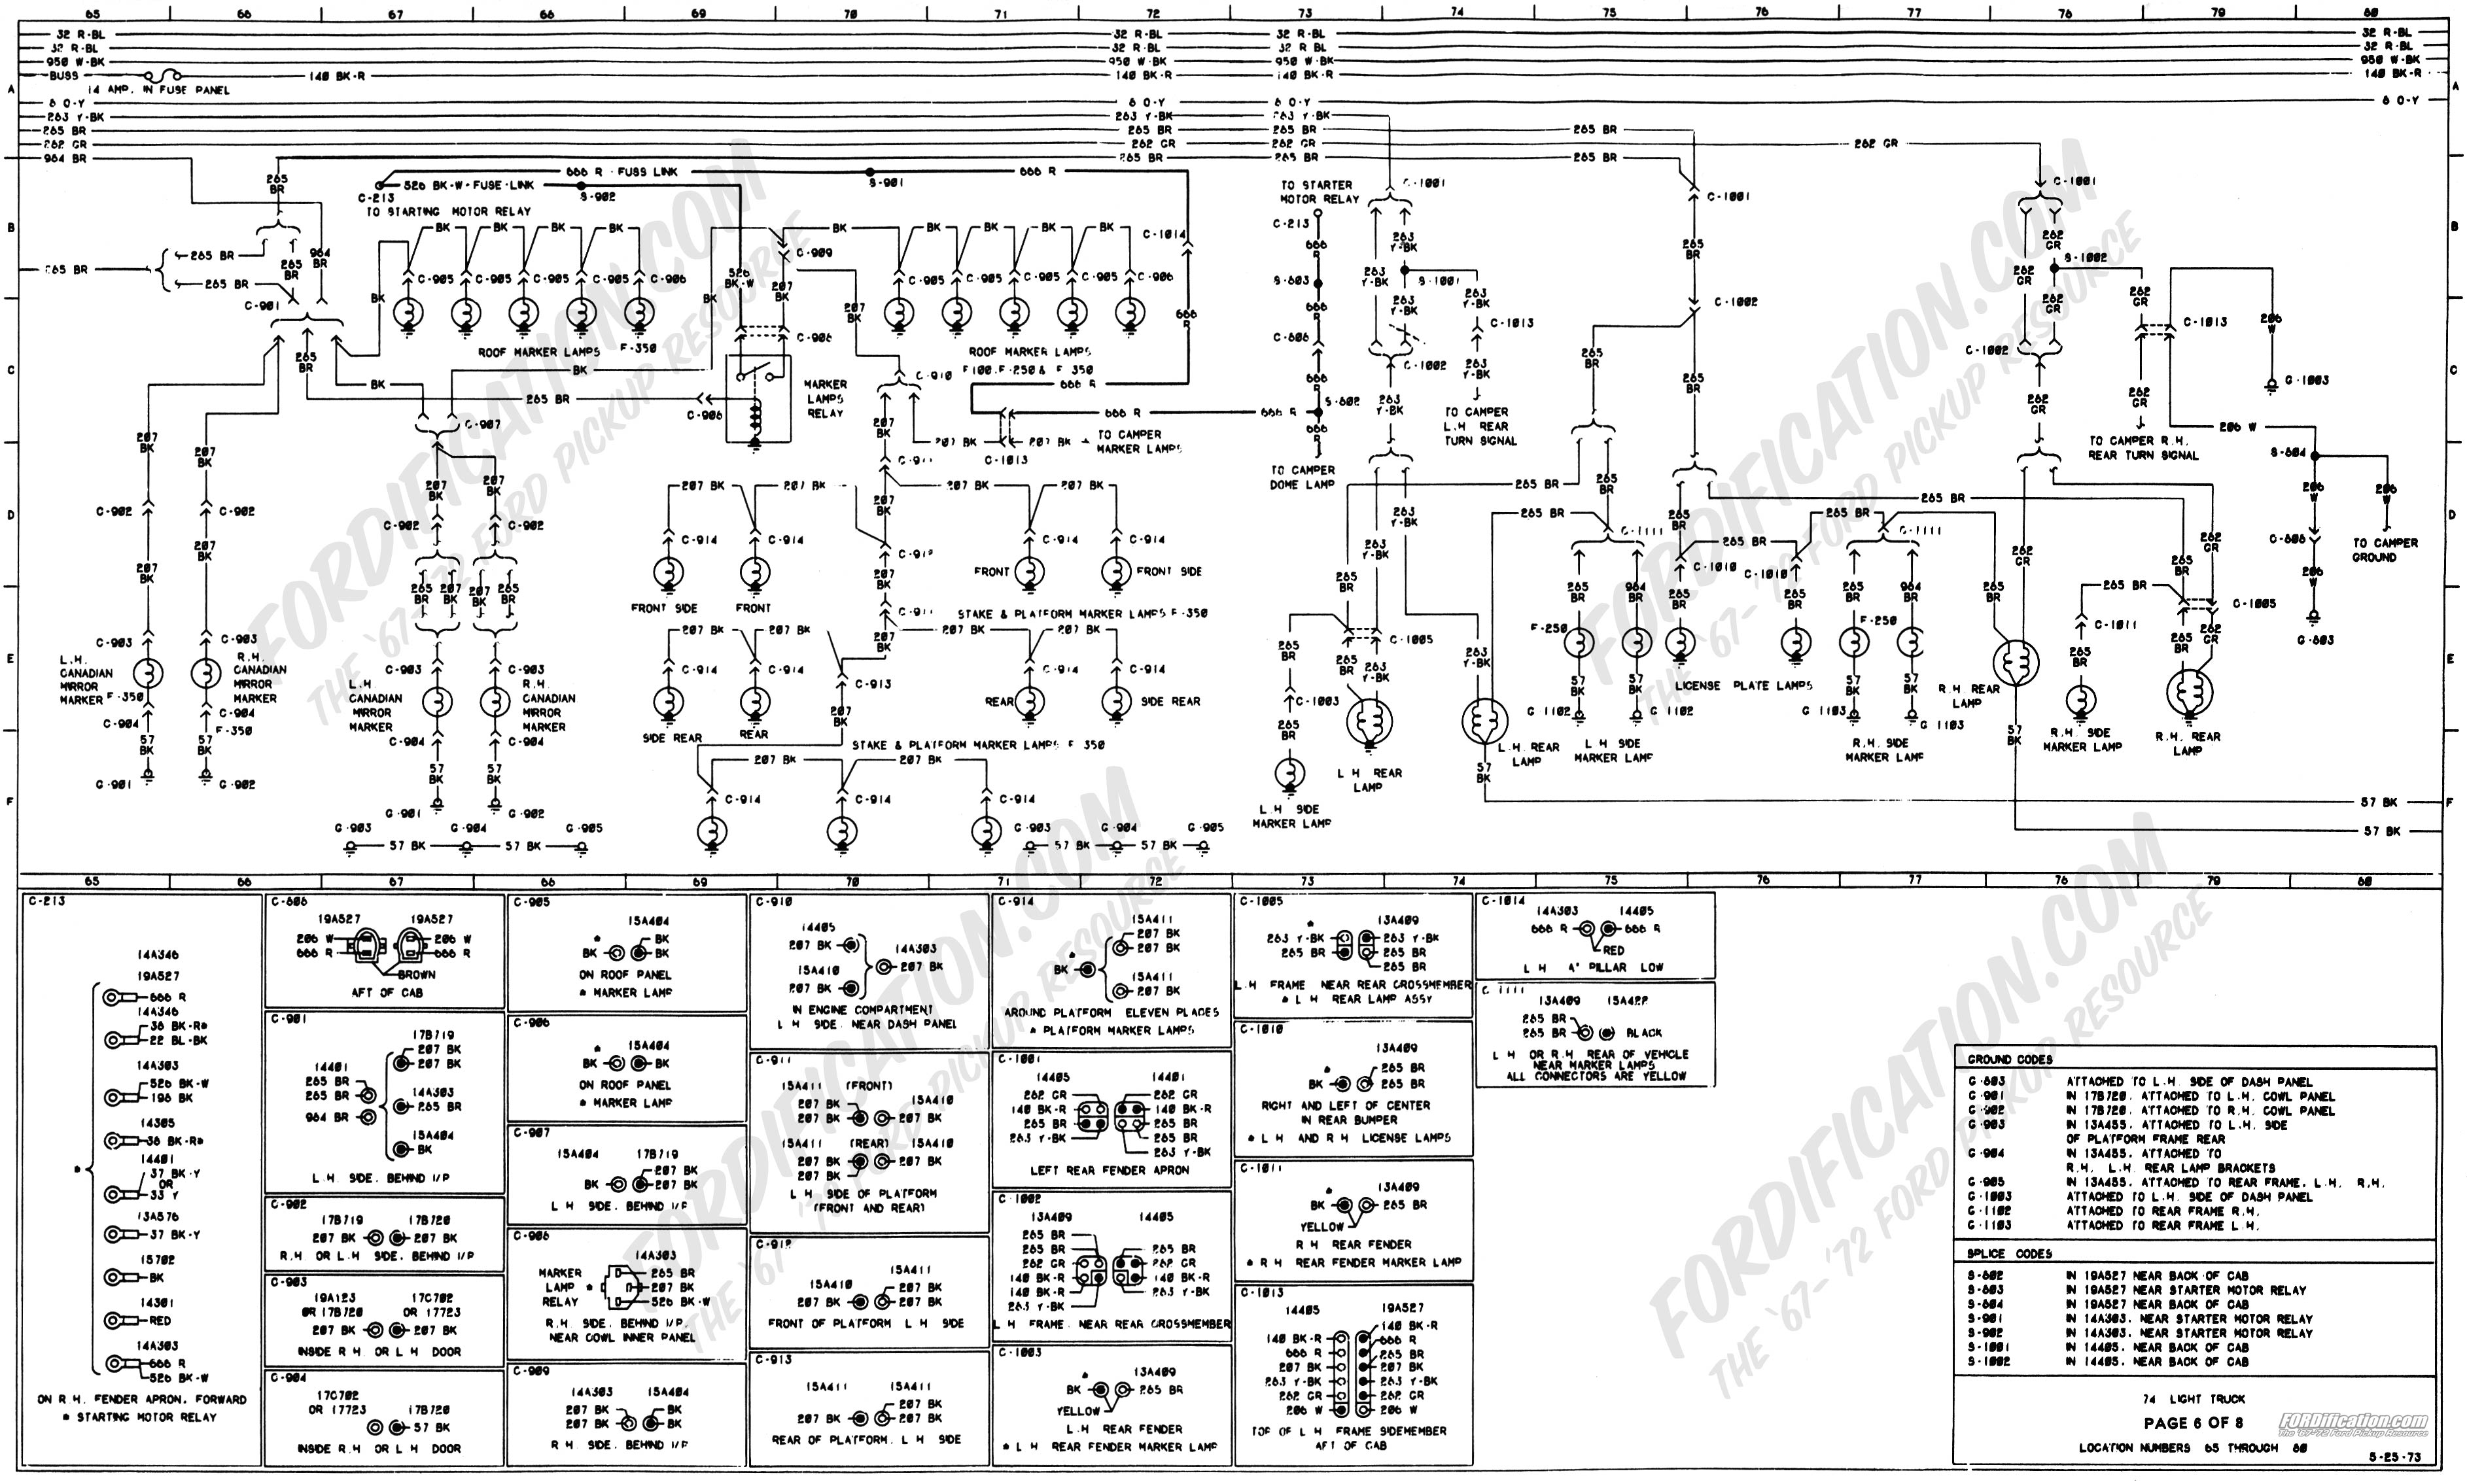 wiring_74master_6of8 1973 1979 ford truck wiring diagrams & schematics fordification net 1979 bronco fuse box diagram at crackthecode.co